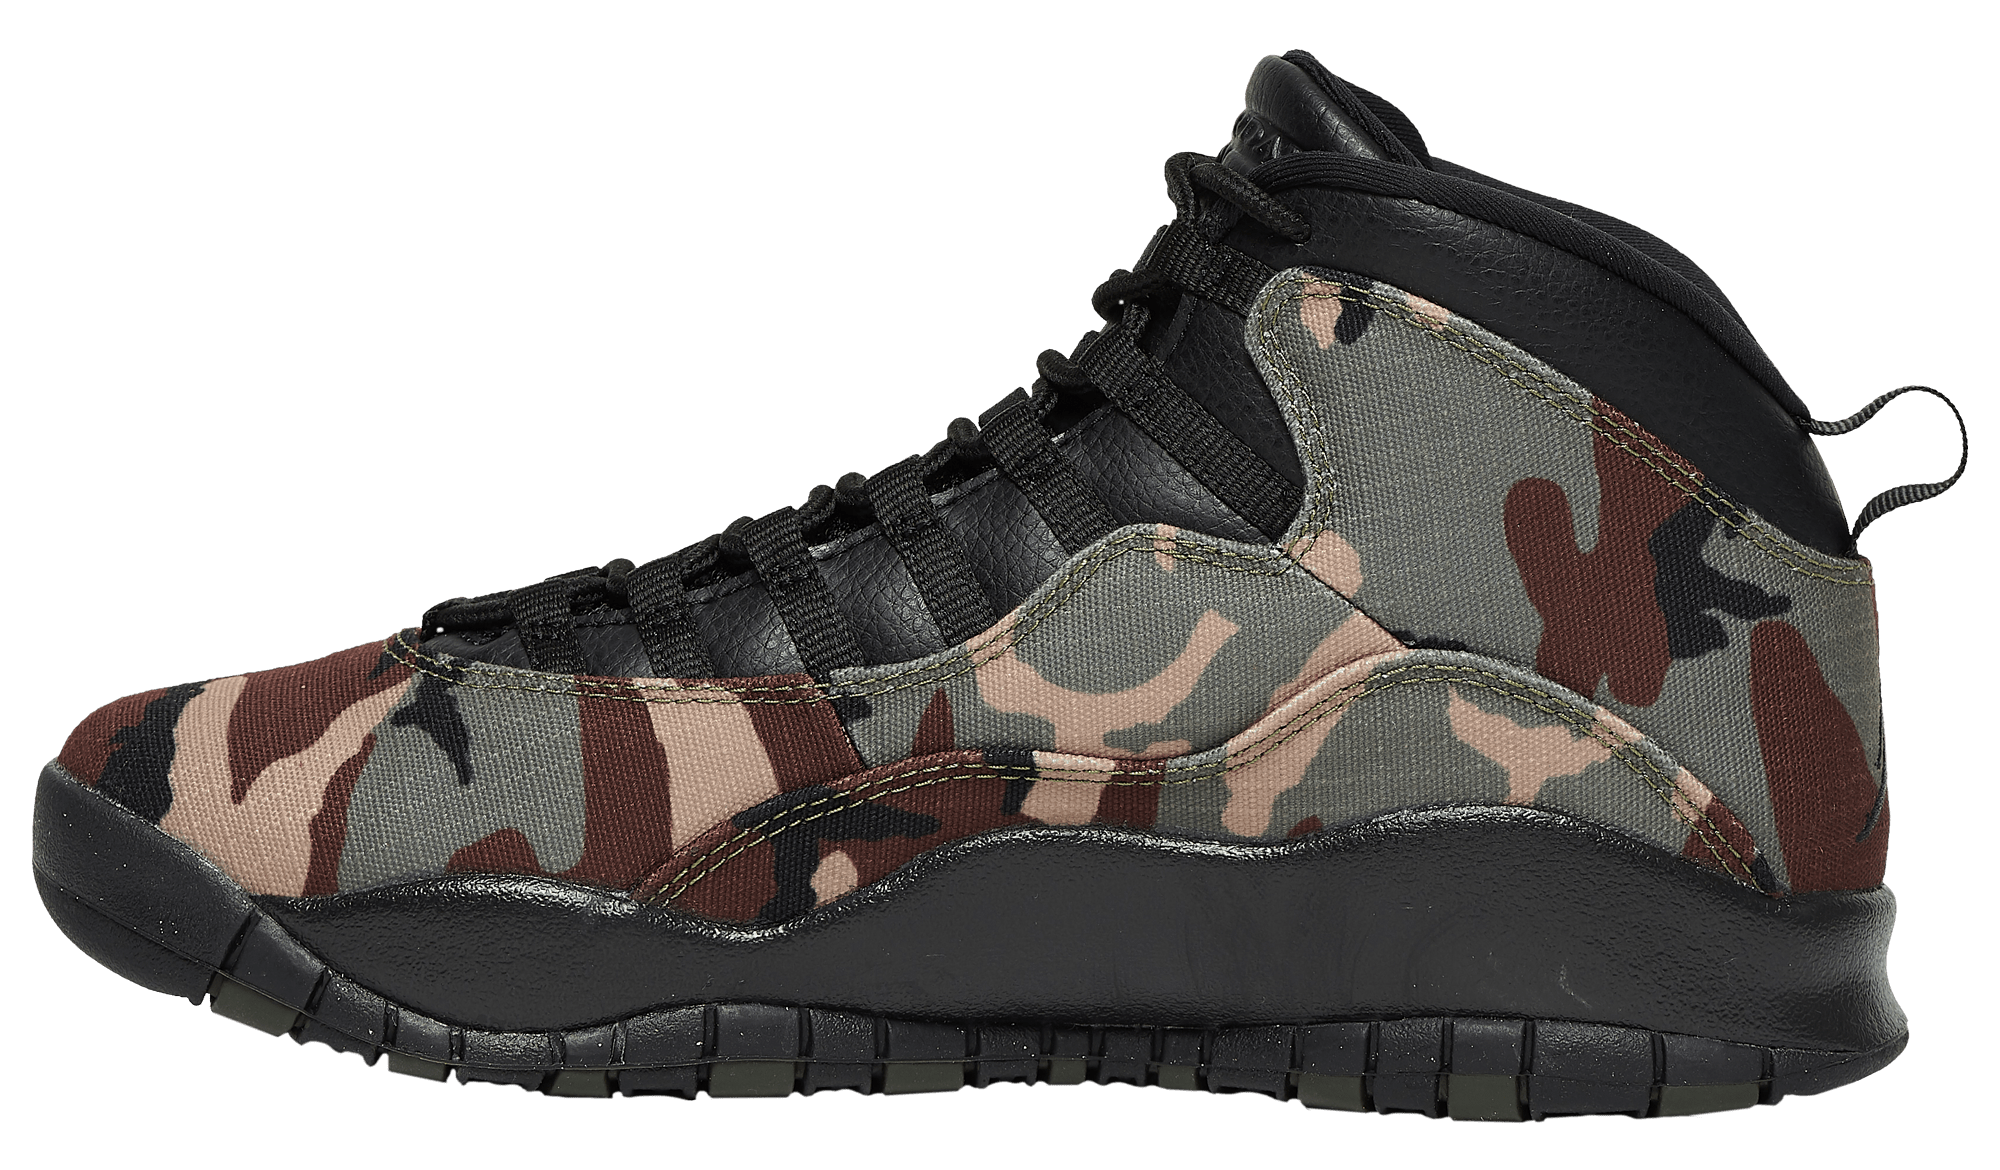 Air Jordan 10 Retro Desert Camo/Black-Light Chocolate 310805-201 Medial